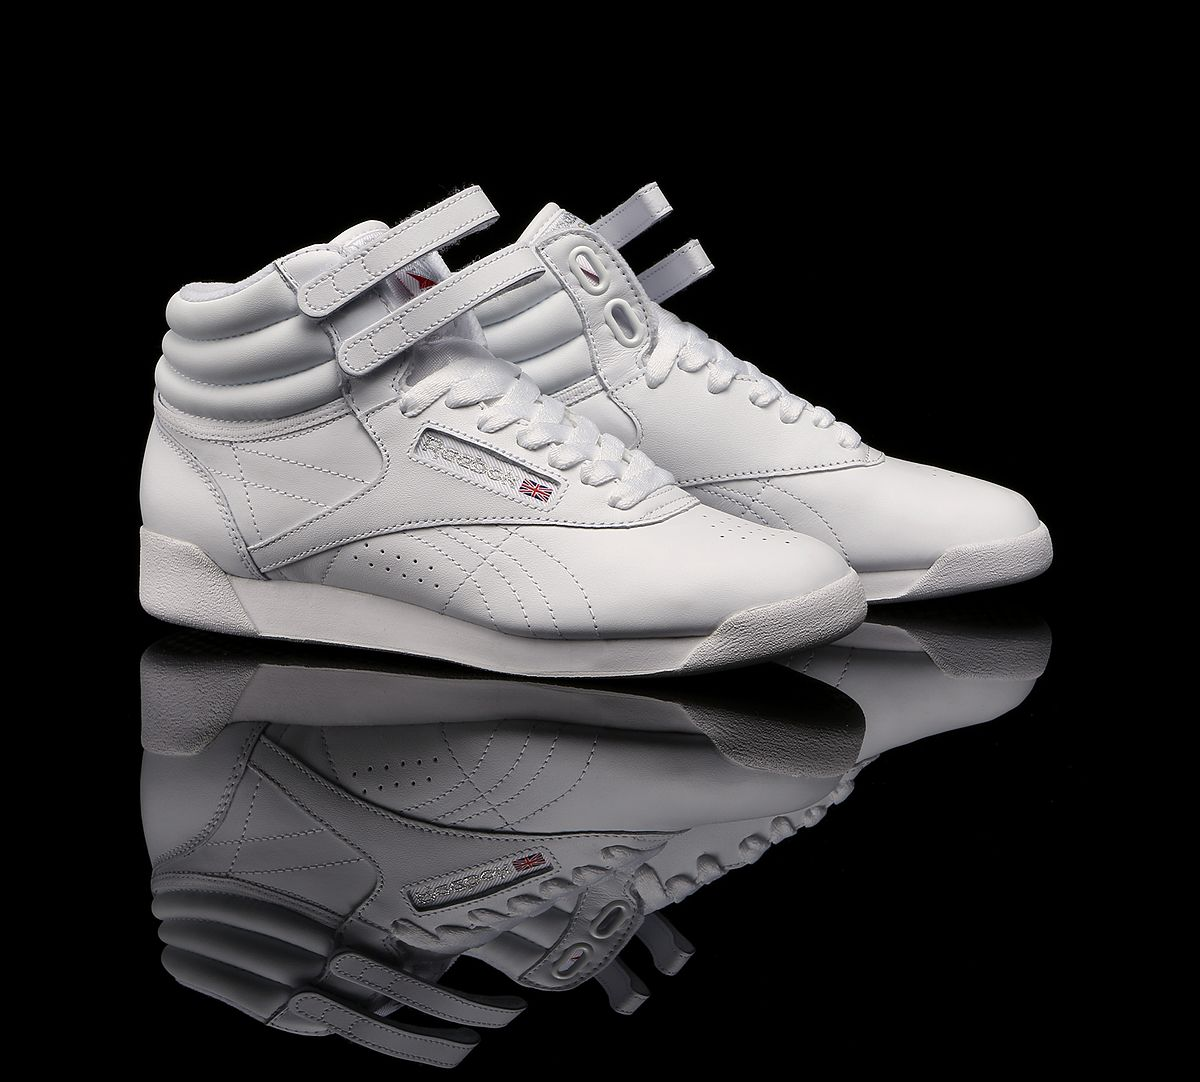 Popular Reebok Shoes